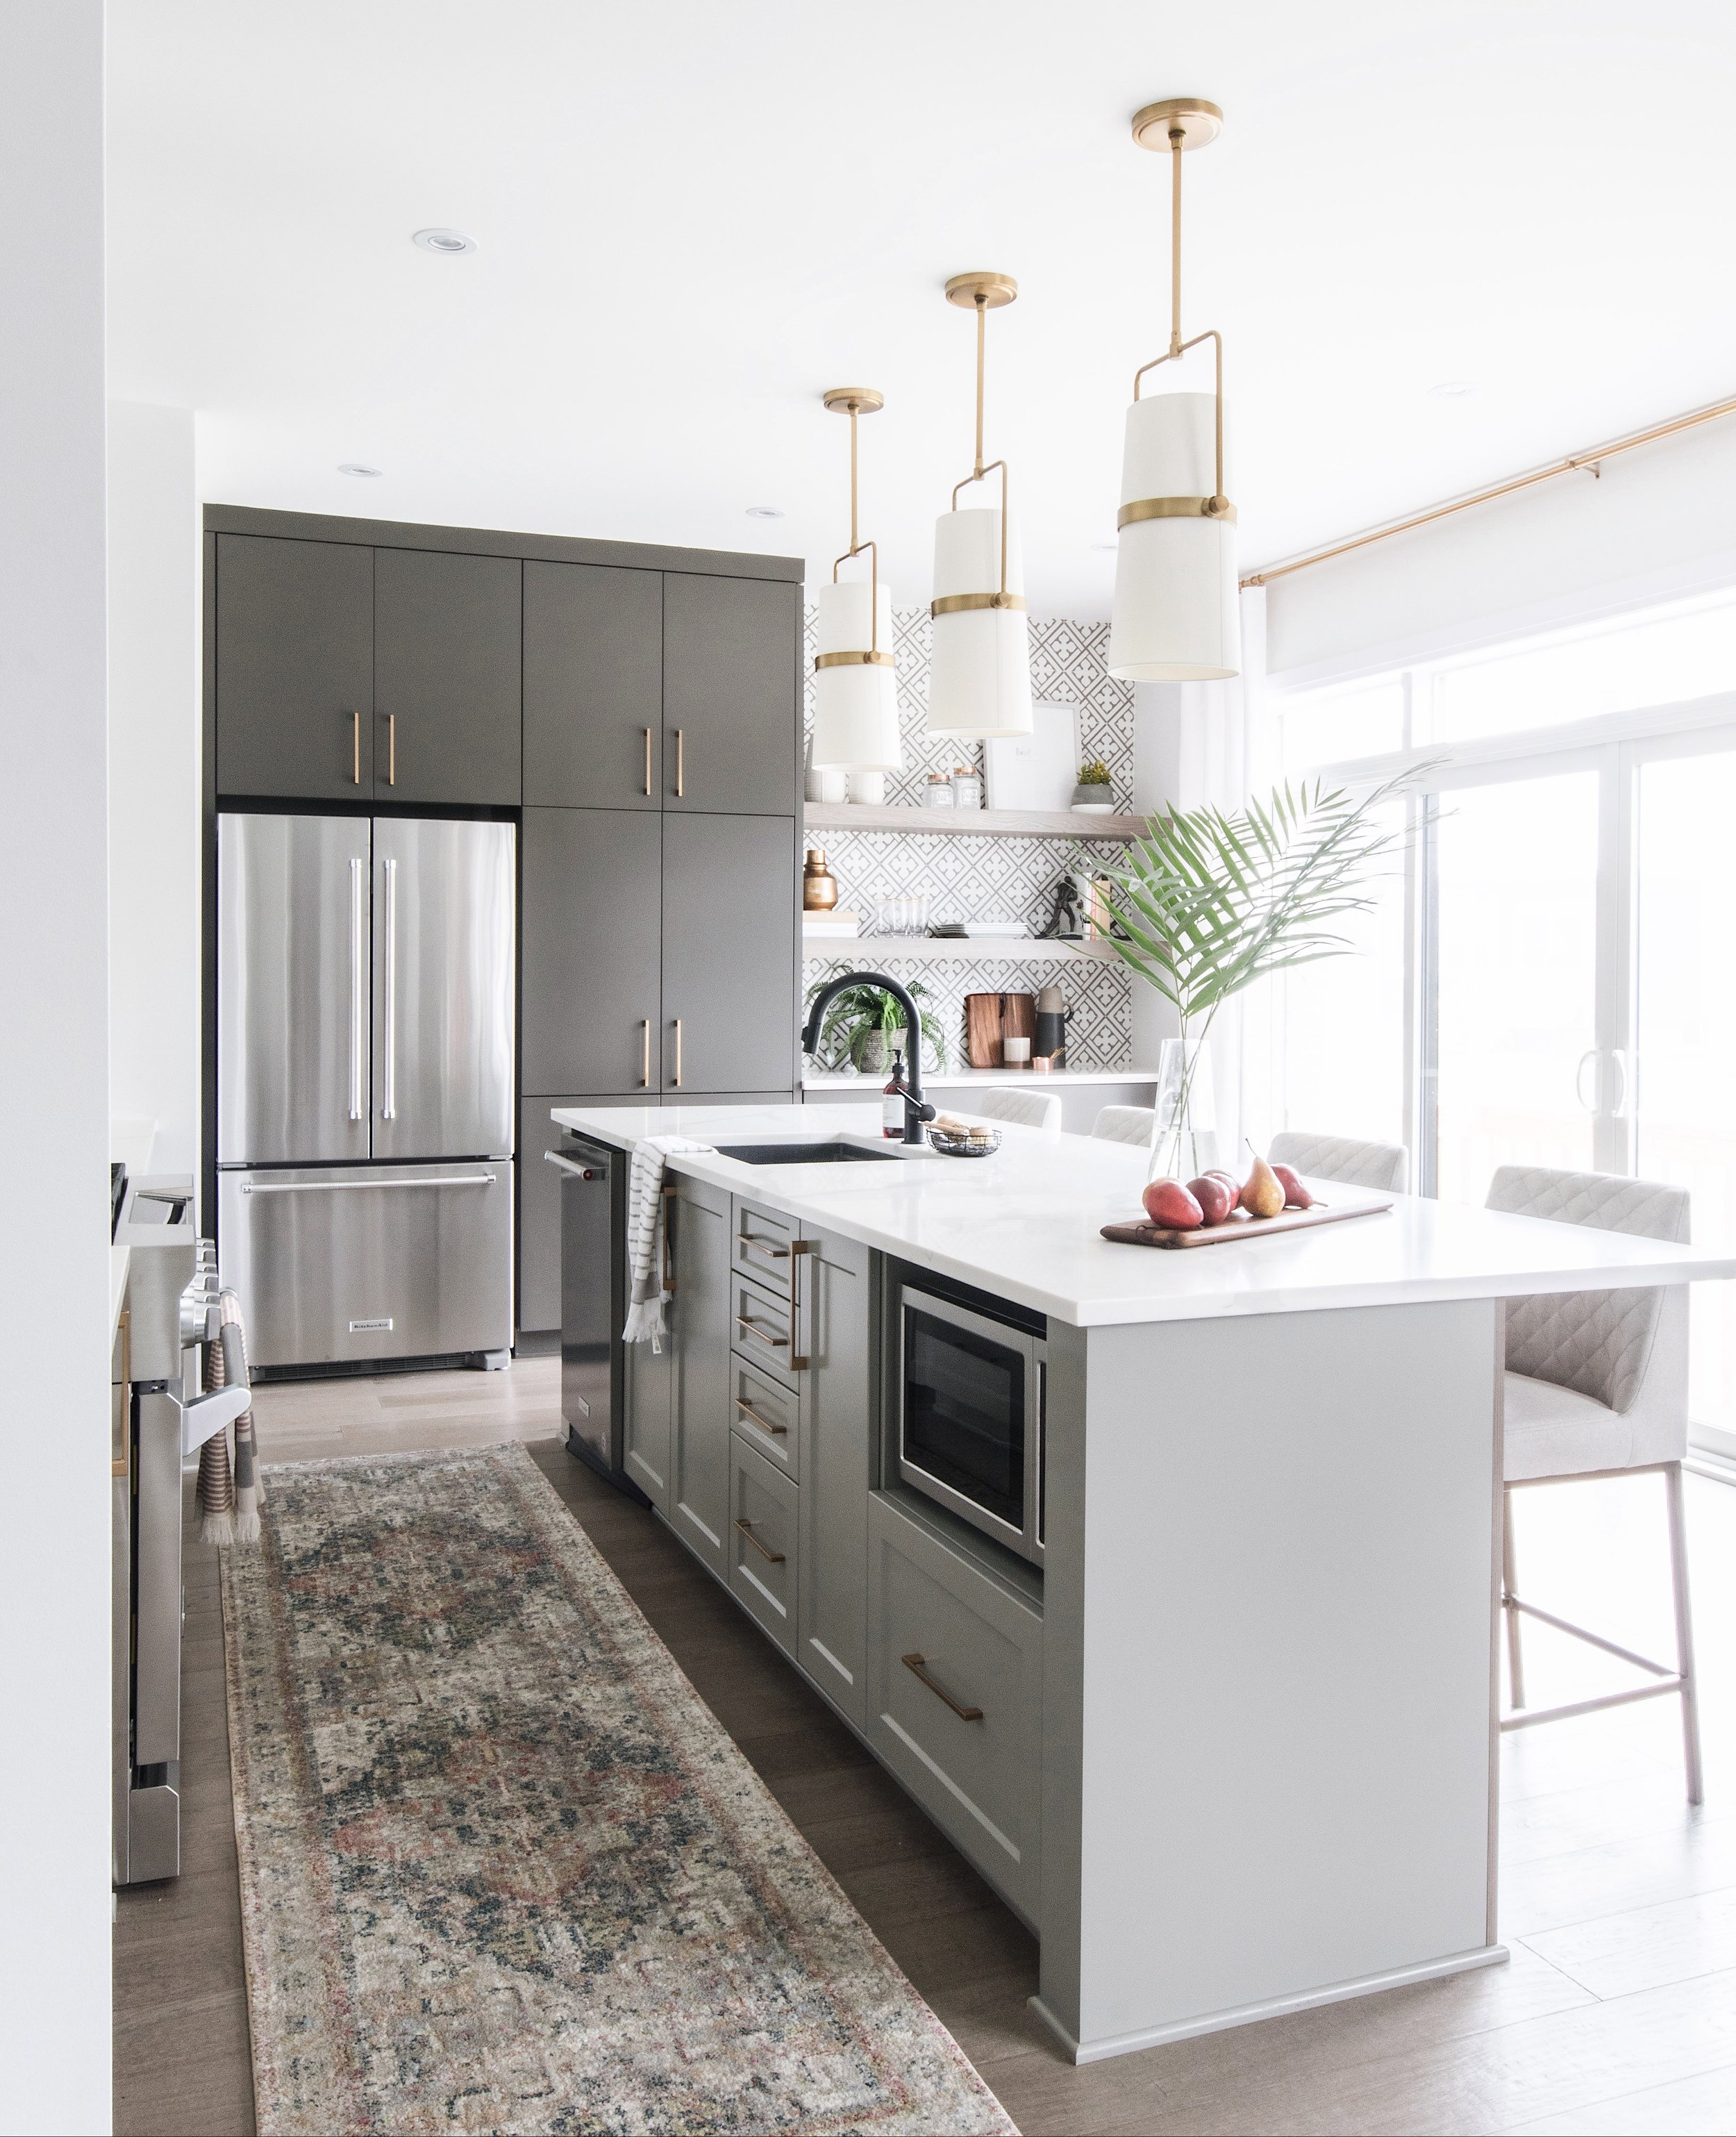 Two-toned kitchen with a laid back California vibe. Flanked on either side by a dramatic patterned tile feature wall and matte black inset cabinets by Ottawa interior design firm Leclair Decor.